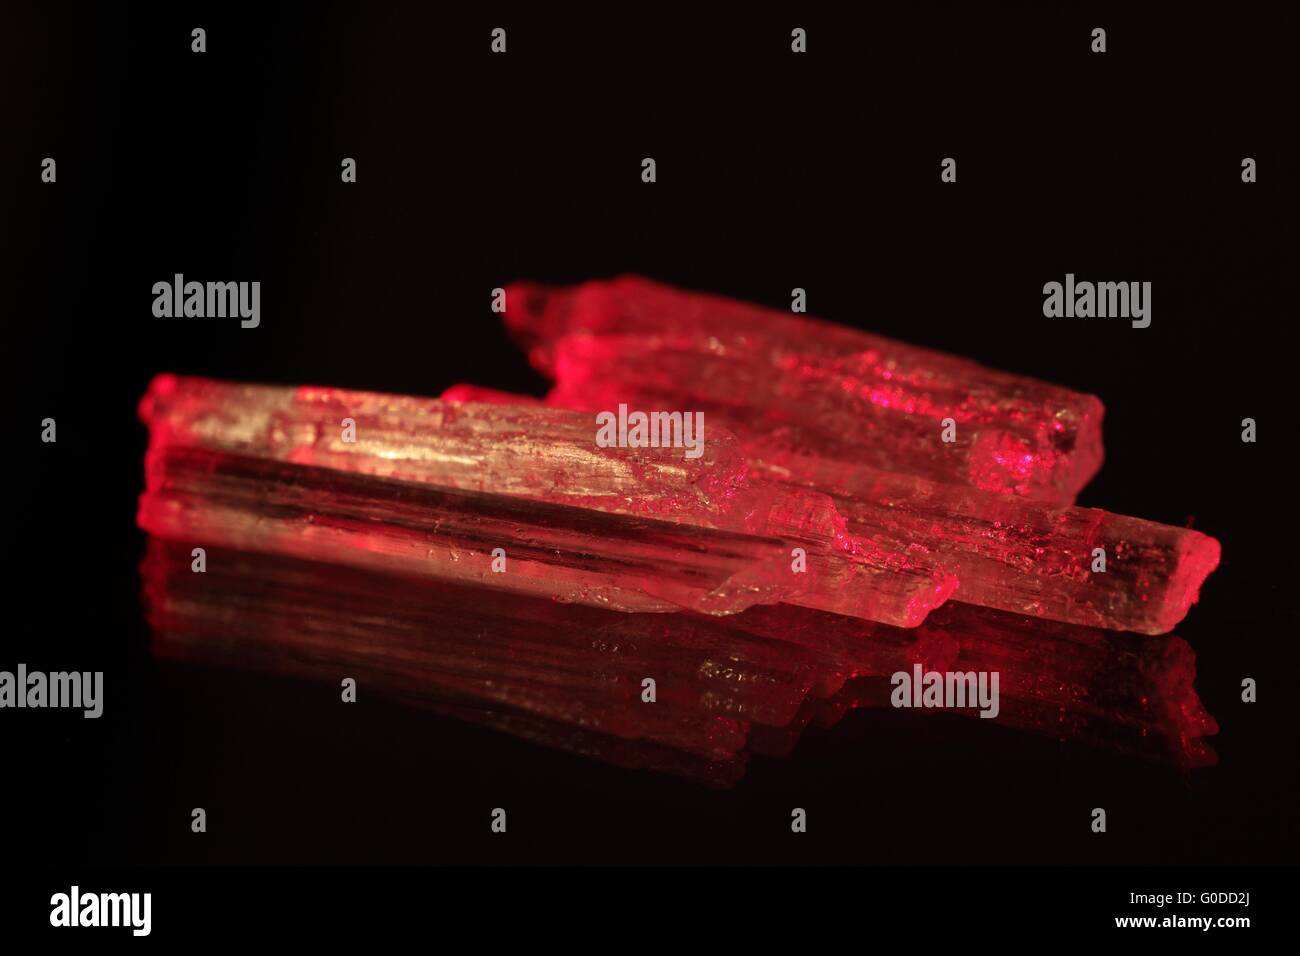 Red glowing crystals. - Stock Image